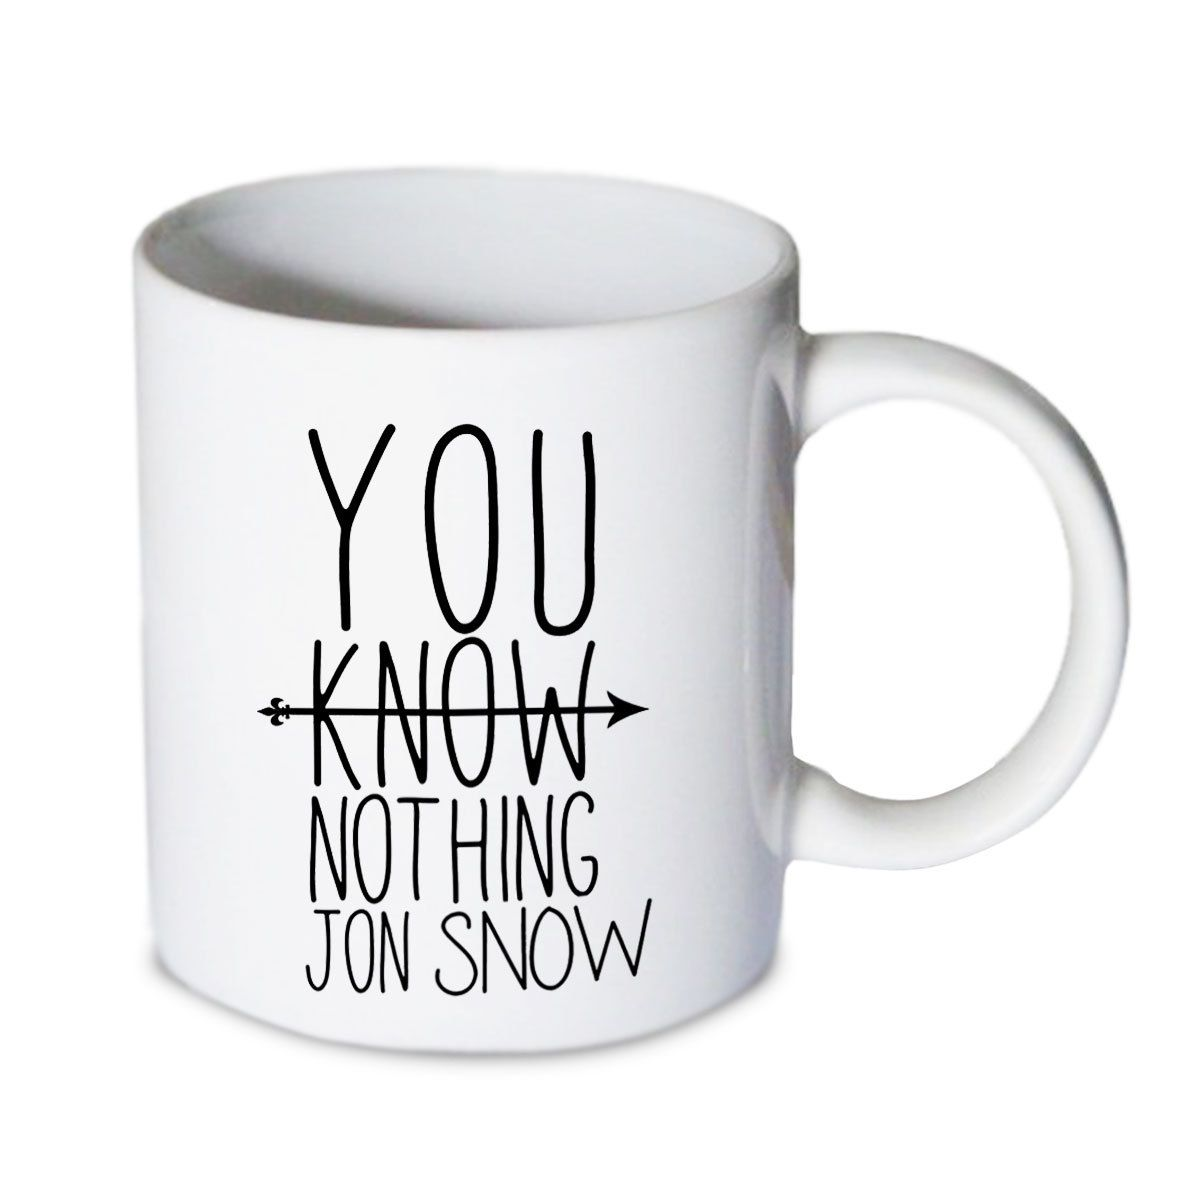 Coffee mug - You Know Nothing Jon Snow Q Mug - Custom Coffee mug - Ceramic